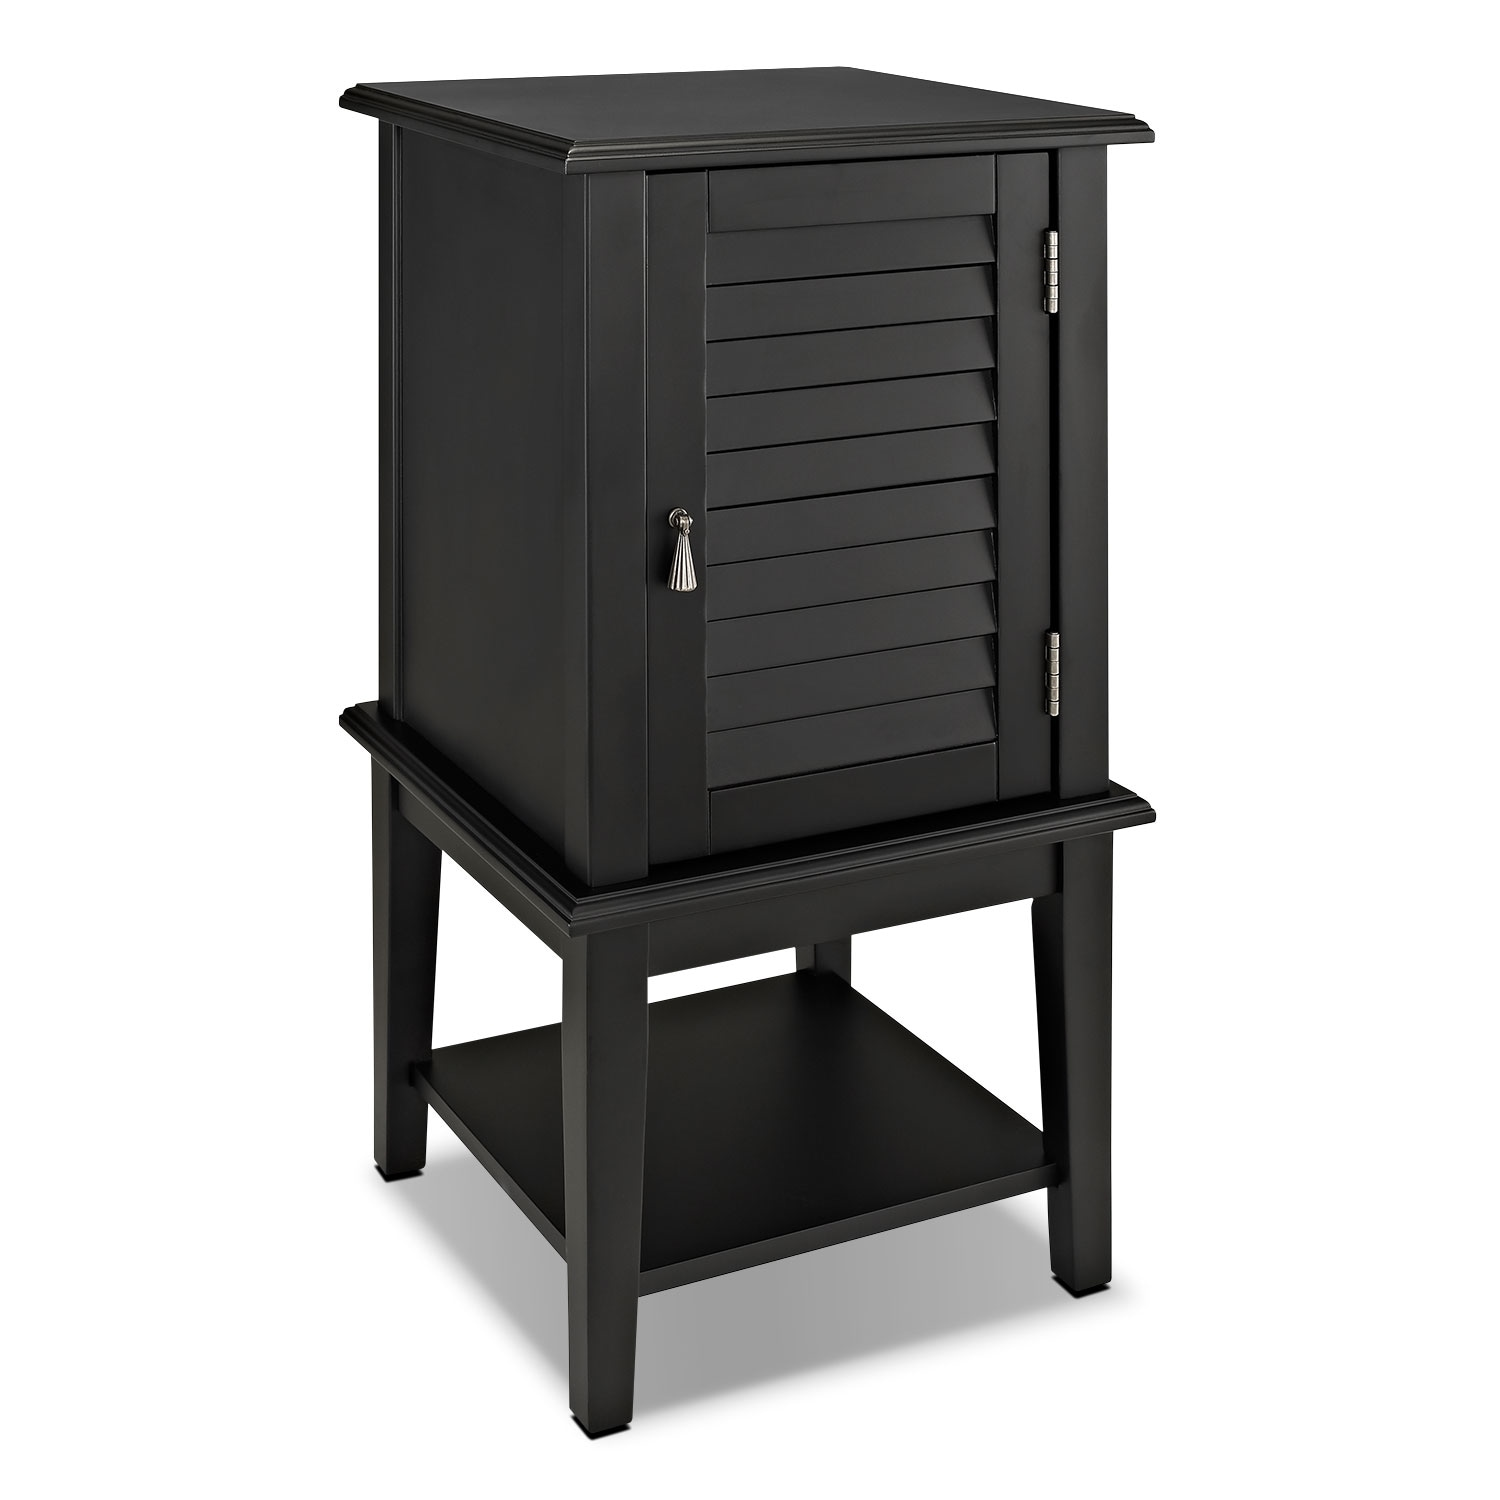 Tulsa Side Table - Black